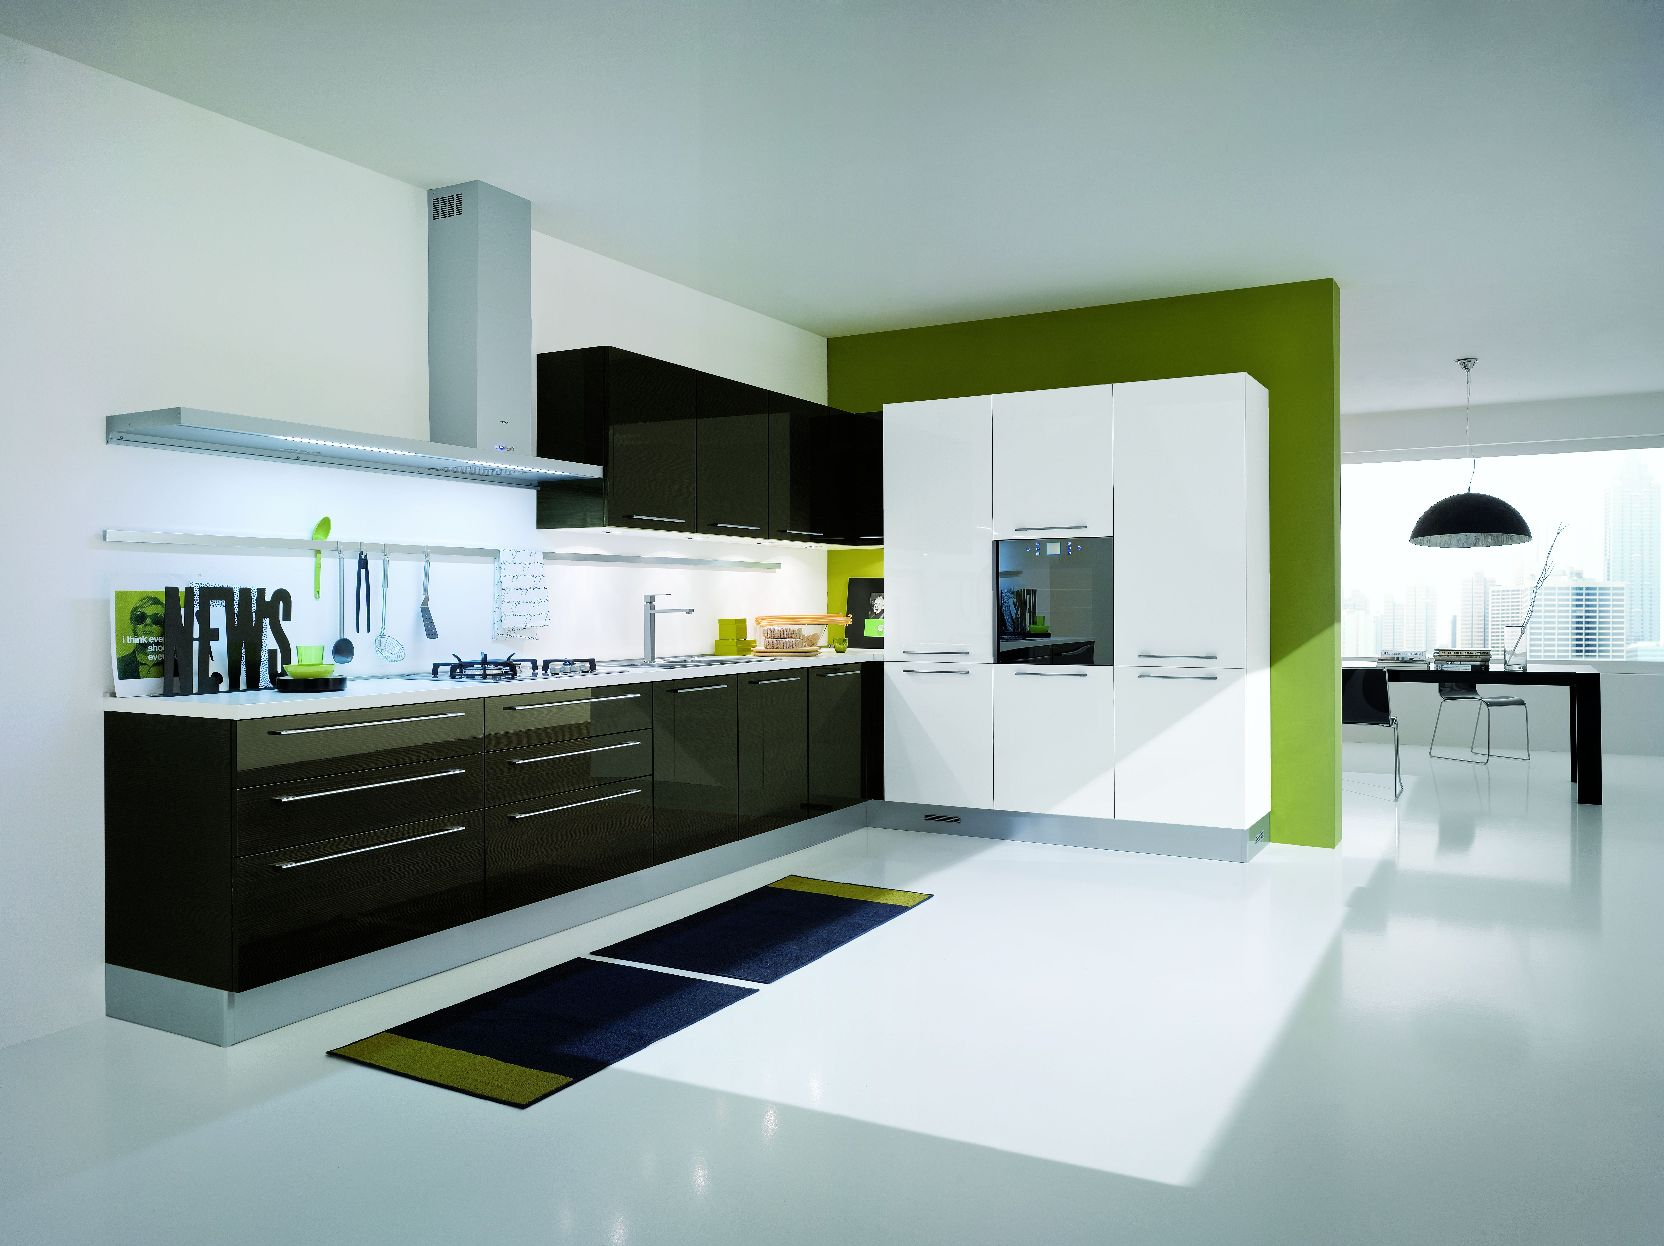 cuisiniste montpellier magasin cuisiniste montpellier cuisine cuisiniste montpellier. Black Bedroom Furniture Sets. Home Design Ideas